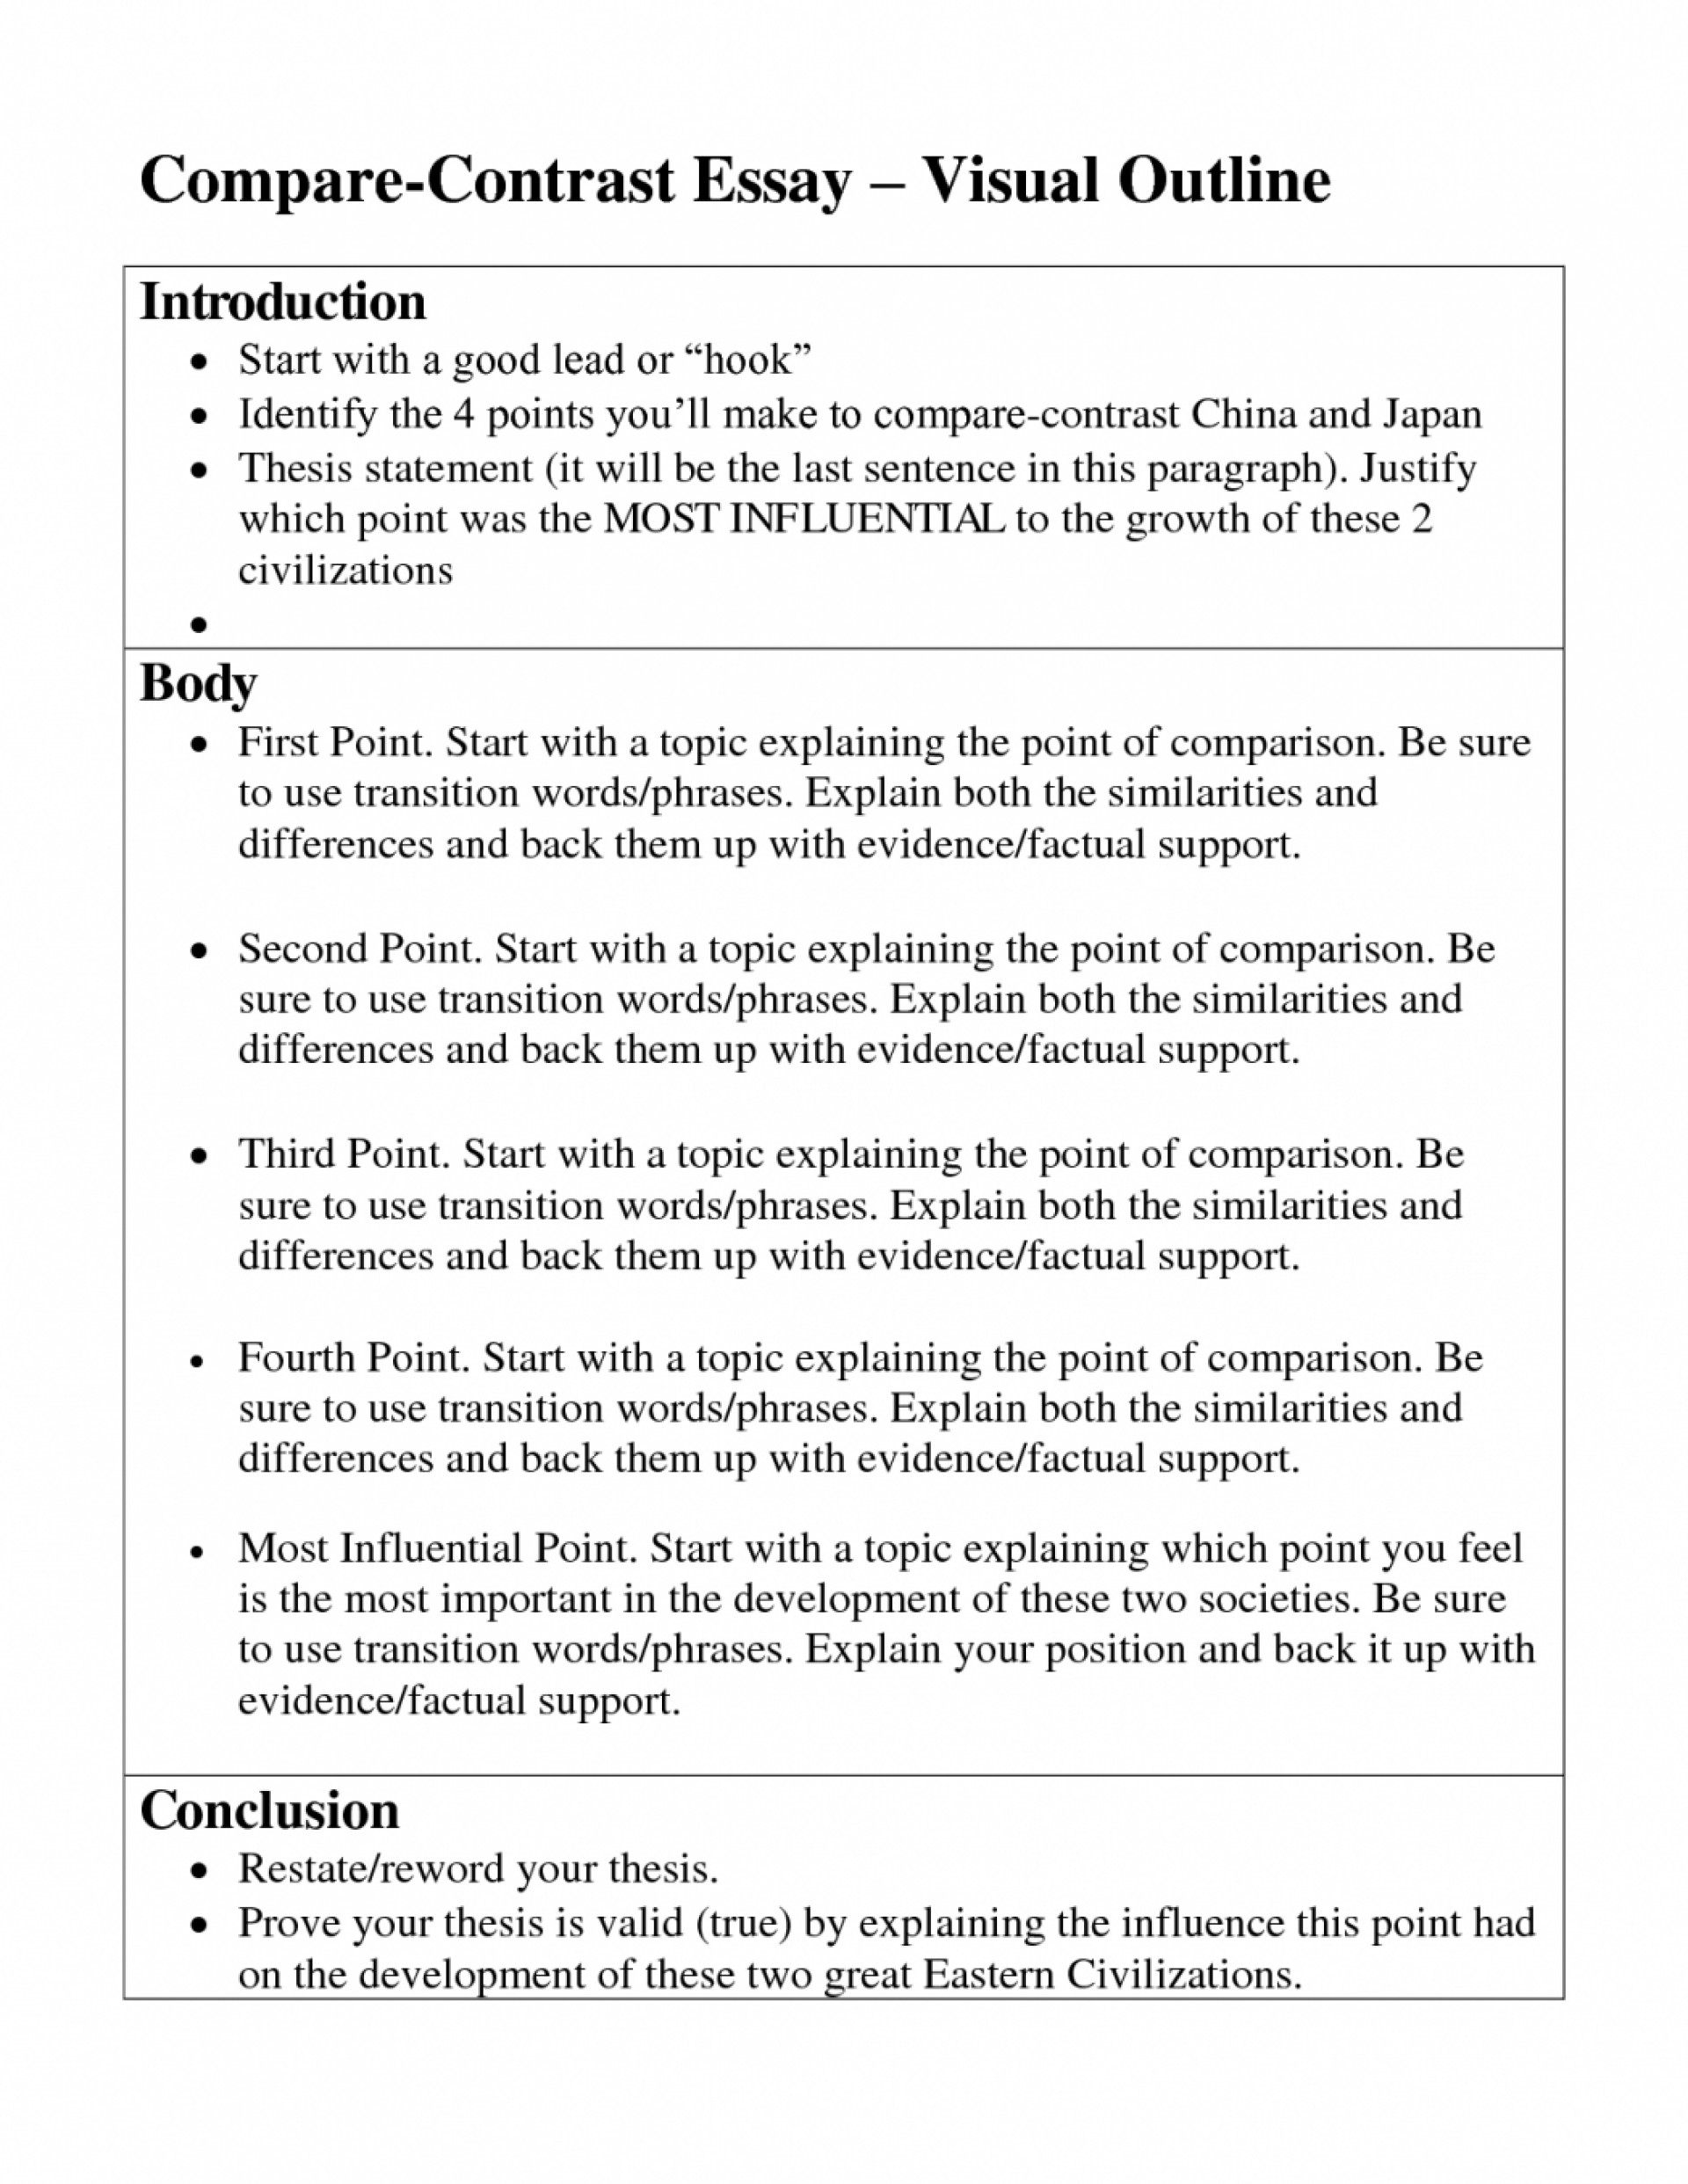 008 Make Money Writing Essays How To Write Essay Outline Template Student For 1048x1356 Best University High School Reddit 1920